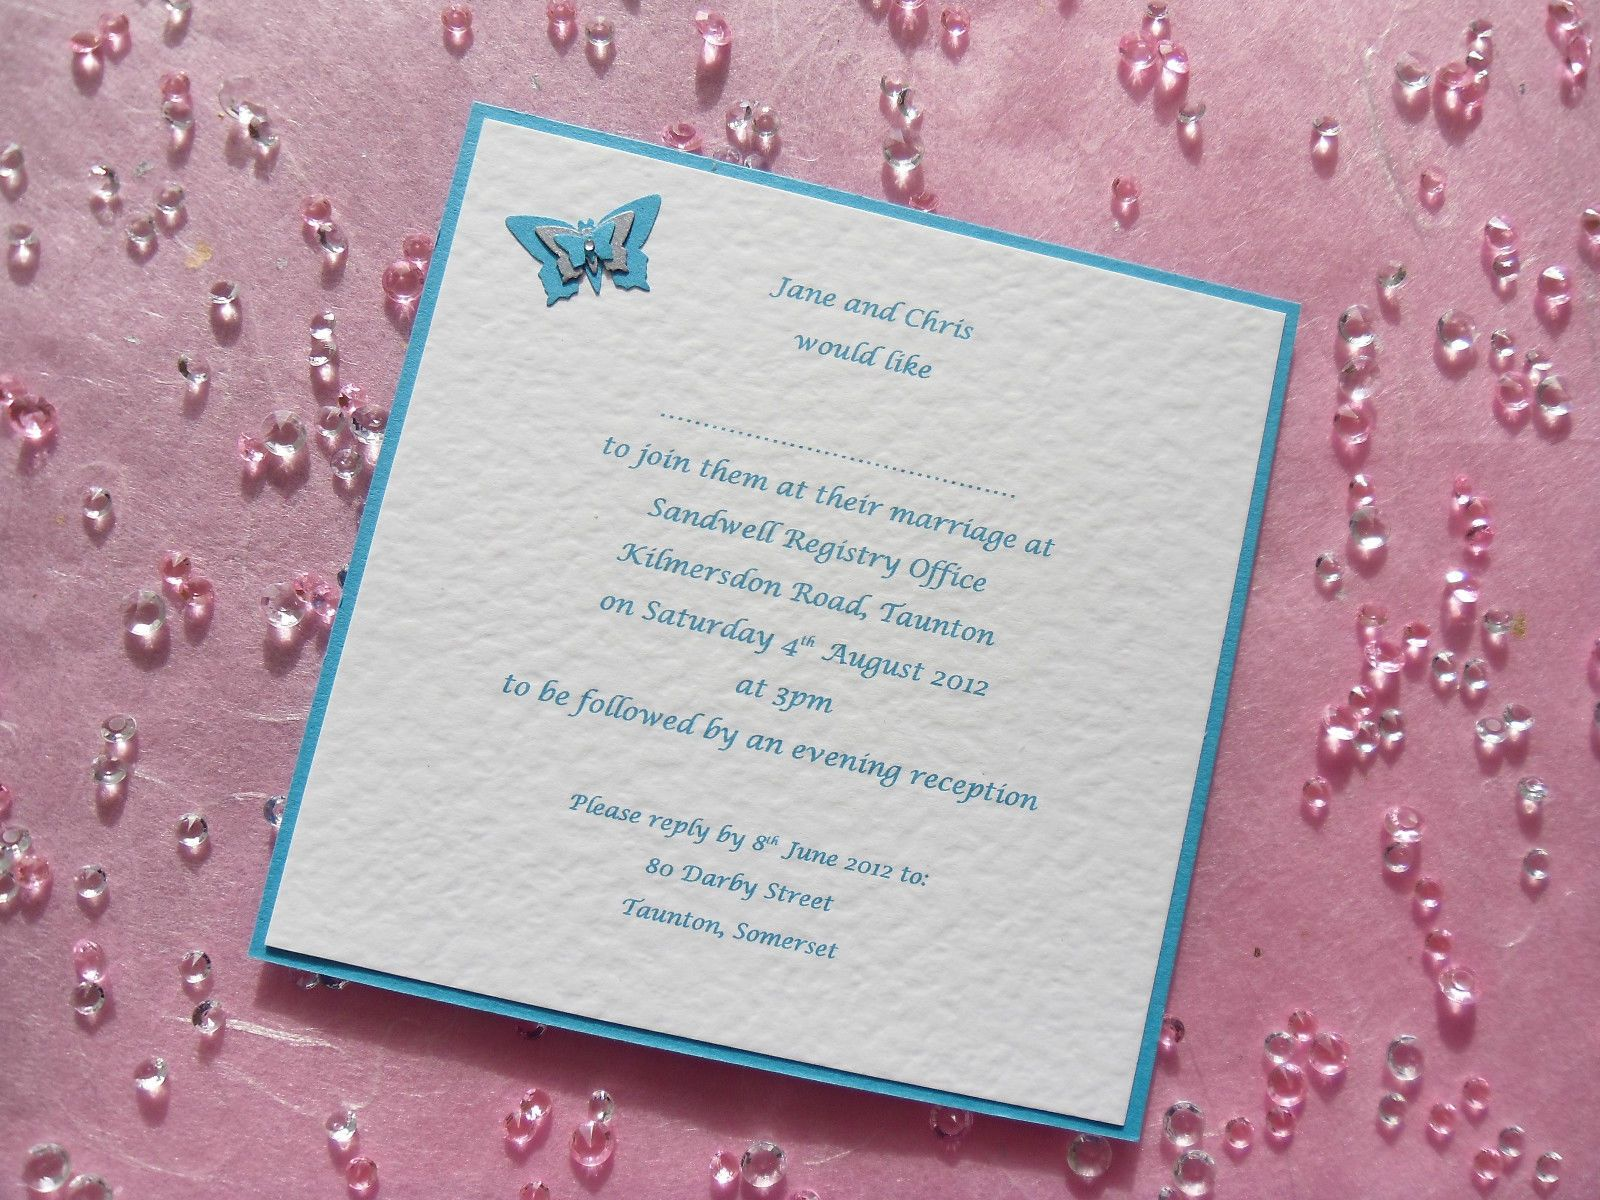 wedding stationery free samples uk - Picture Ideas References